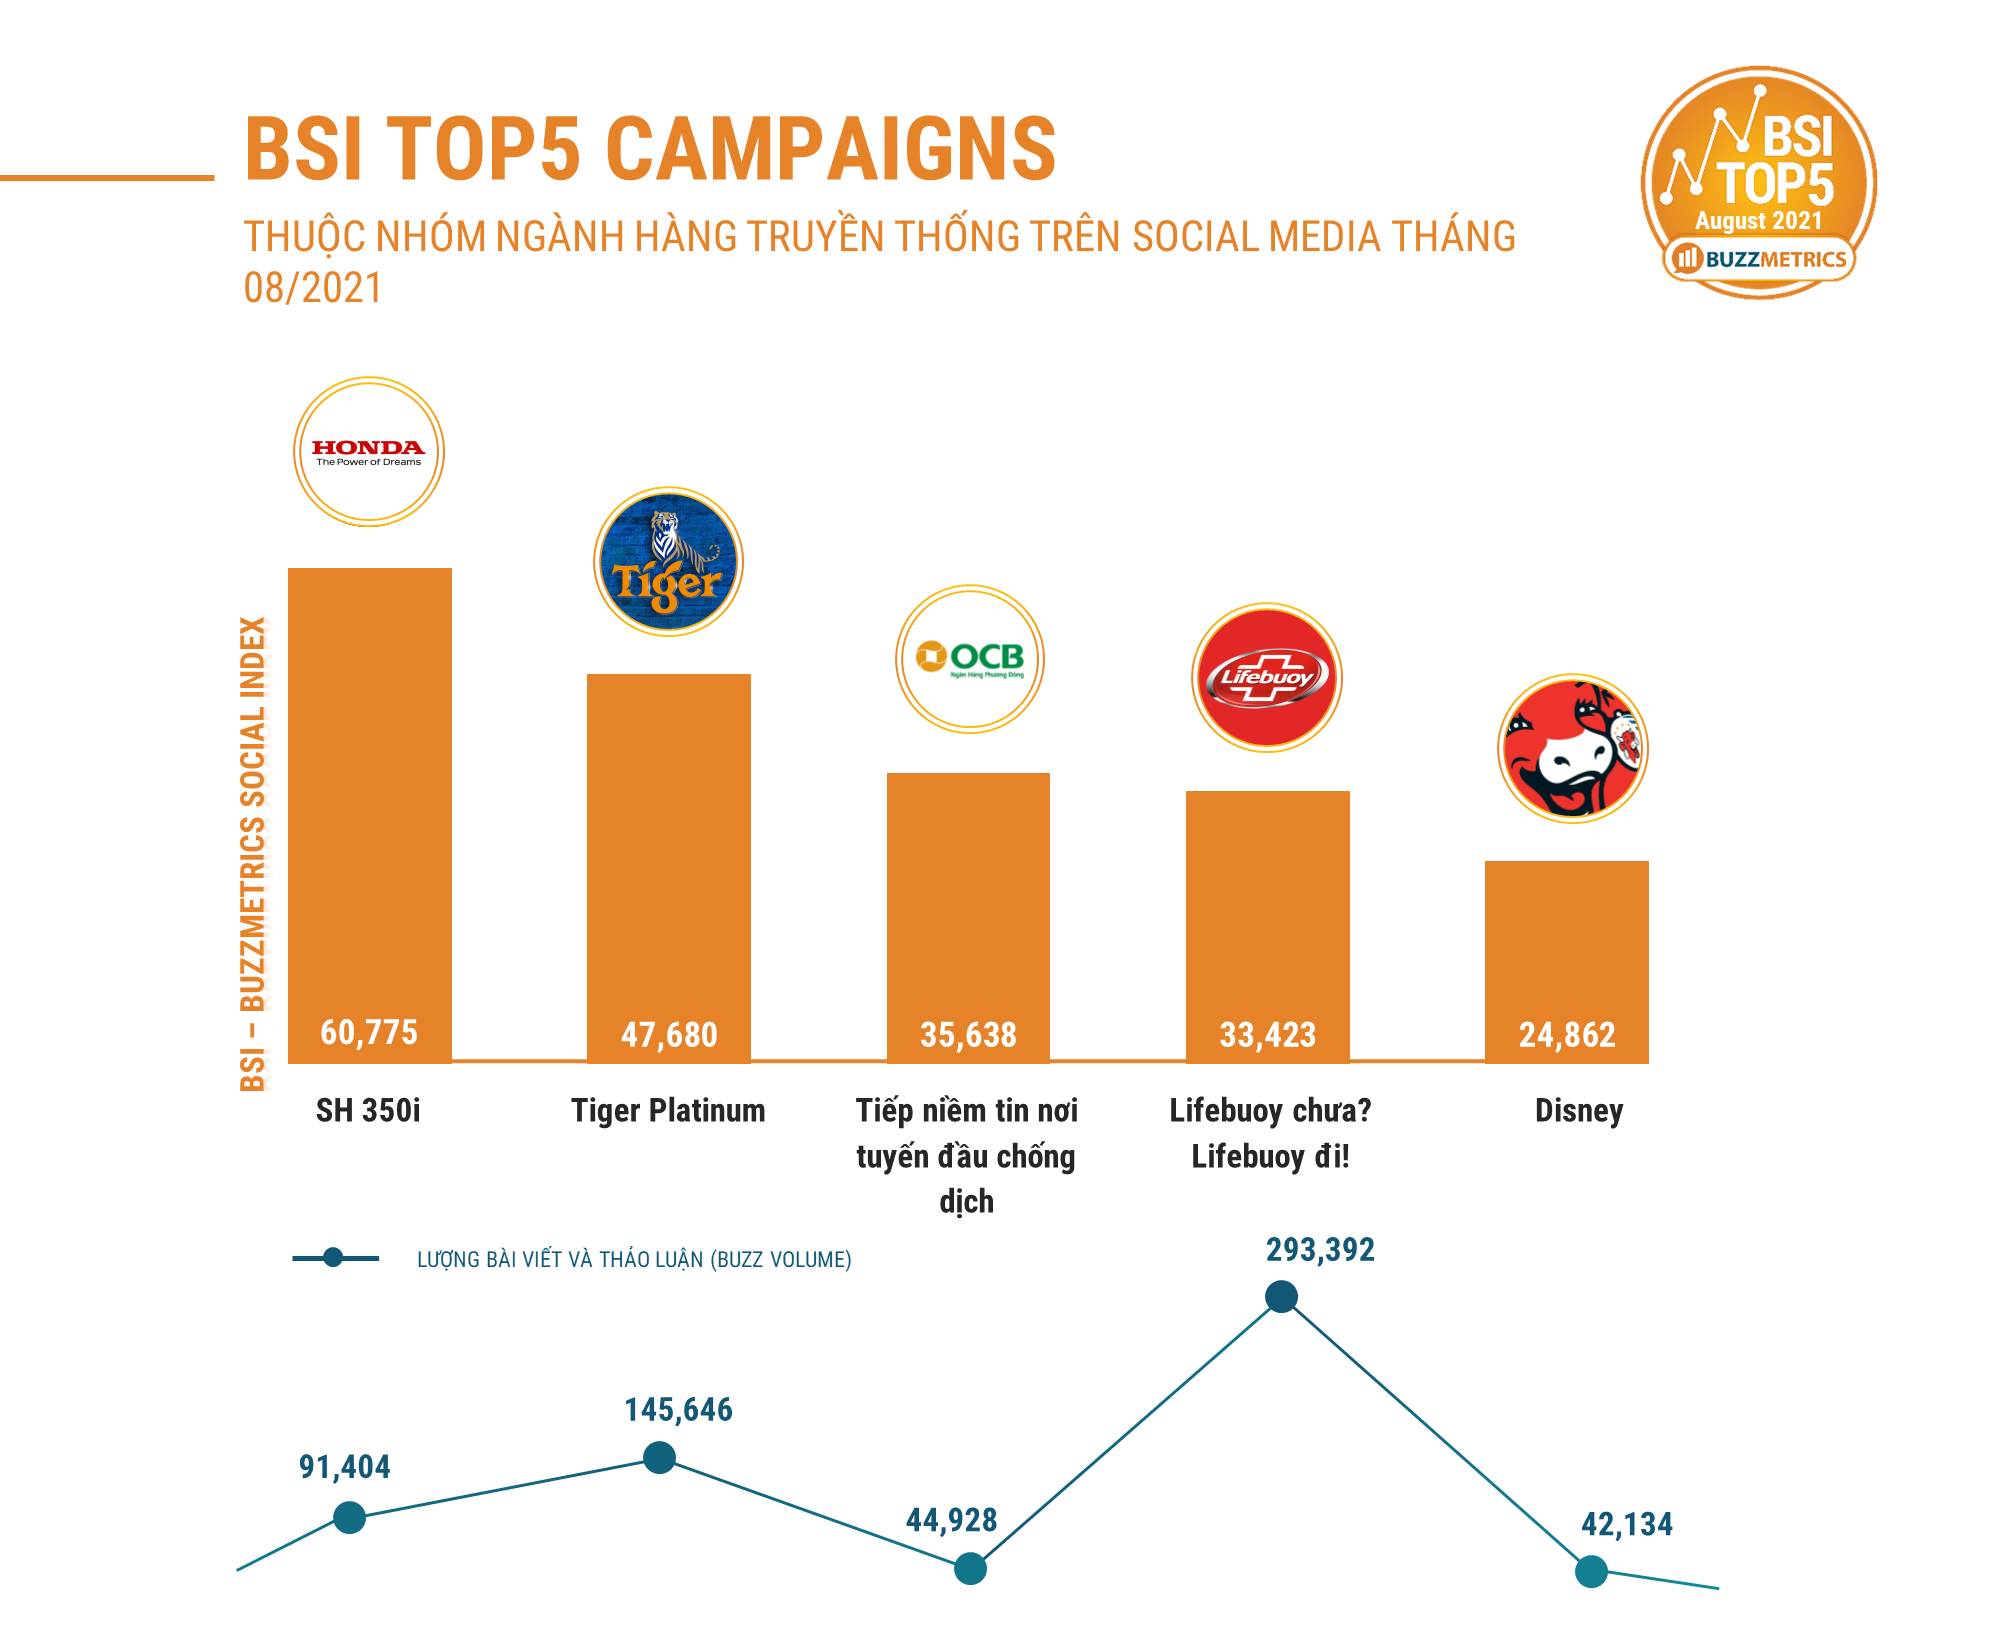 BSI TOP5 AUG 2021 CAMPAIGNS CHART